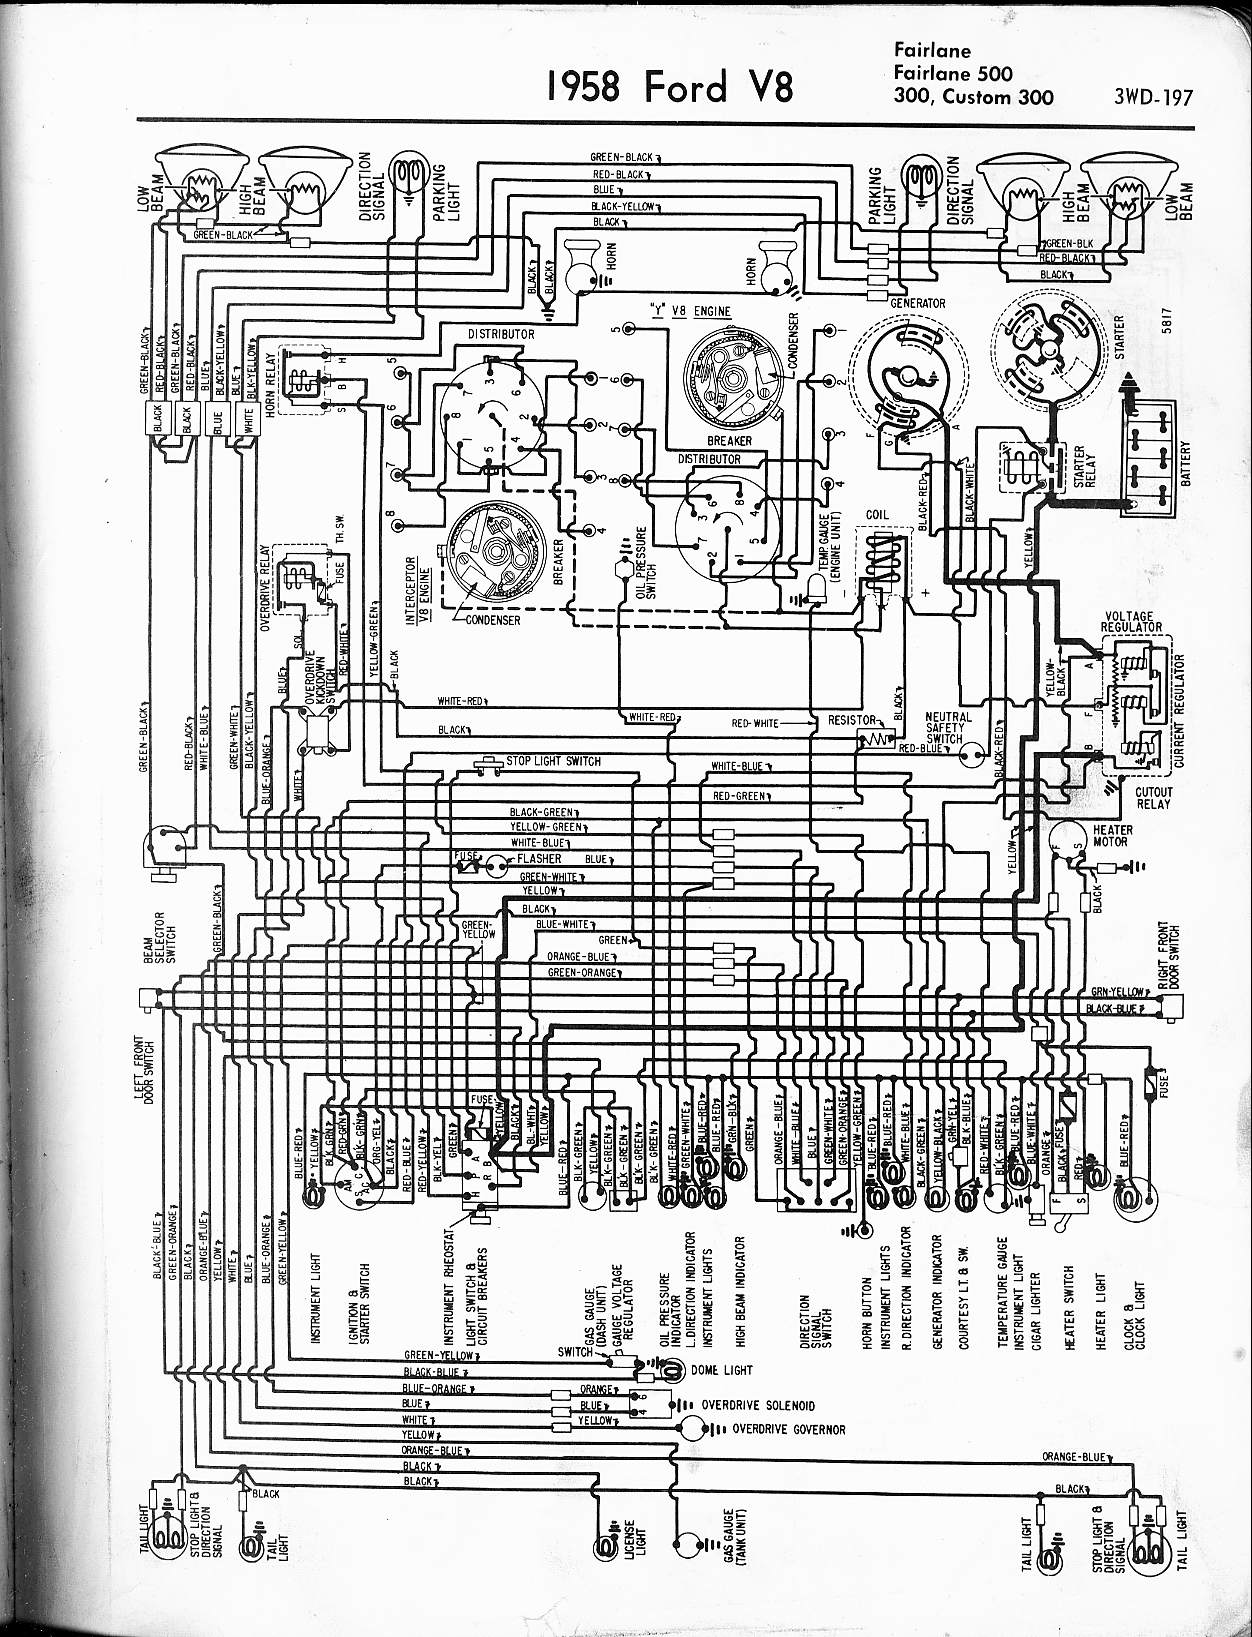 ford f wiring diagram image wiring 1963 ford f100 wiring diagram 1963 auto wiring diagram schematic on 1970 ford f100 wiring diagram